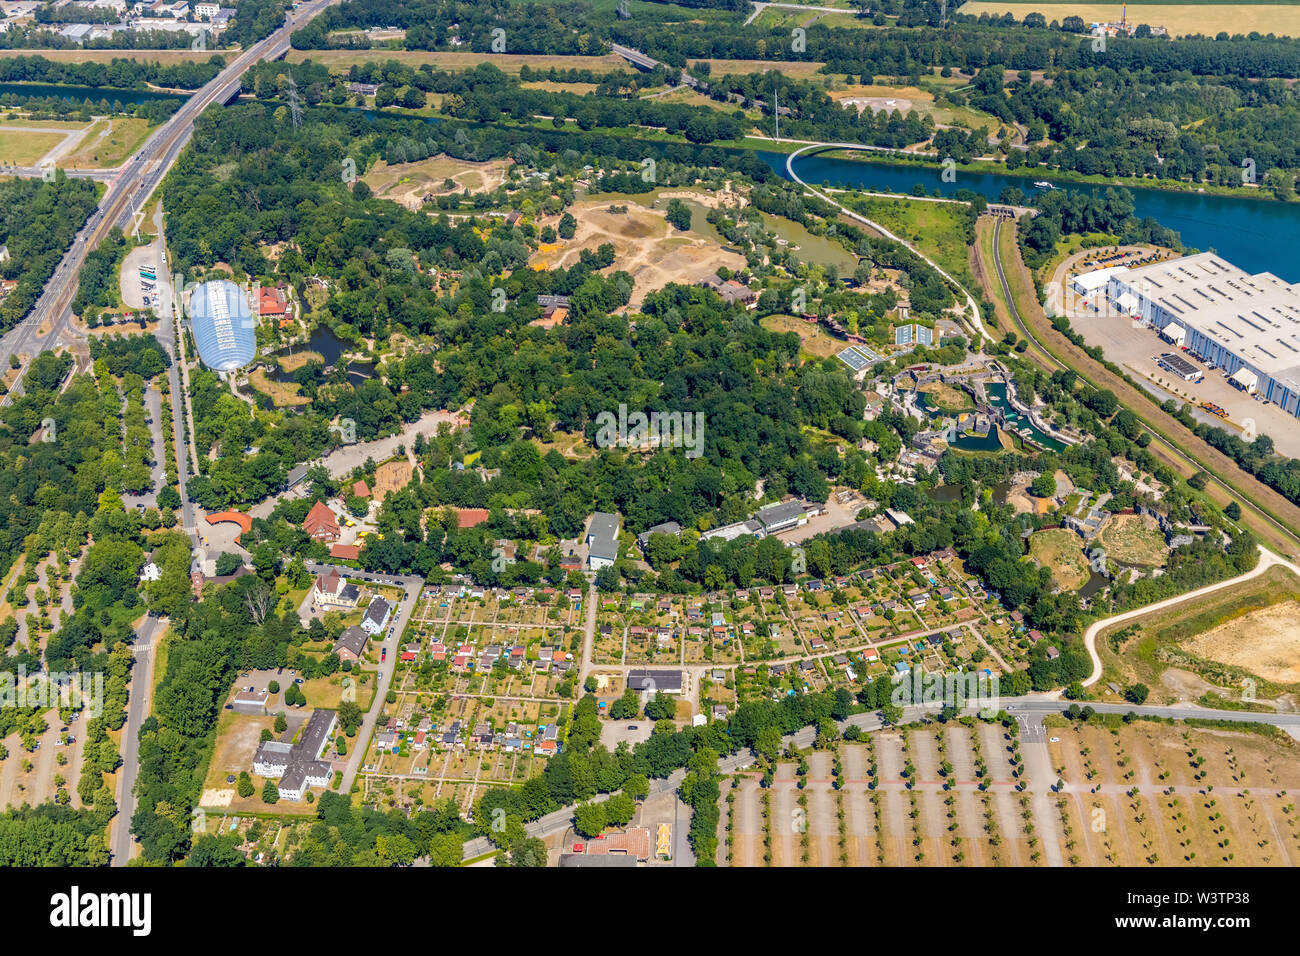 Aerial view of the Zoo Gelsenkirchen ZOOM Experience world with Africa, Asia and Alaska areas, playgrounds, boat tours and restaurants in Gelsenkirche Stock Photo